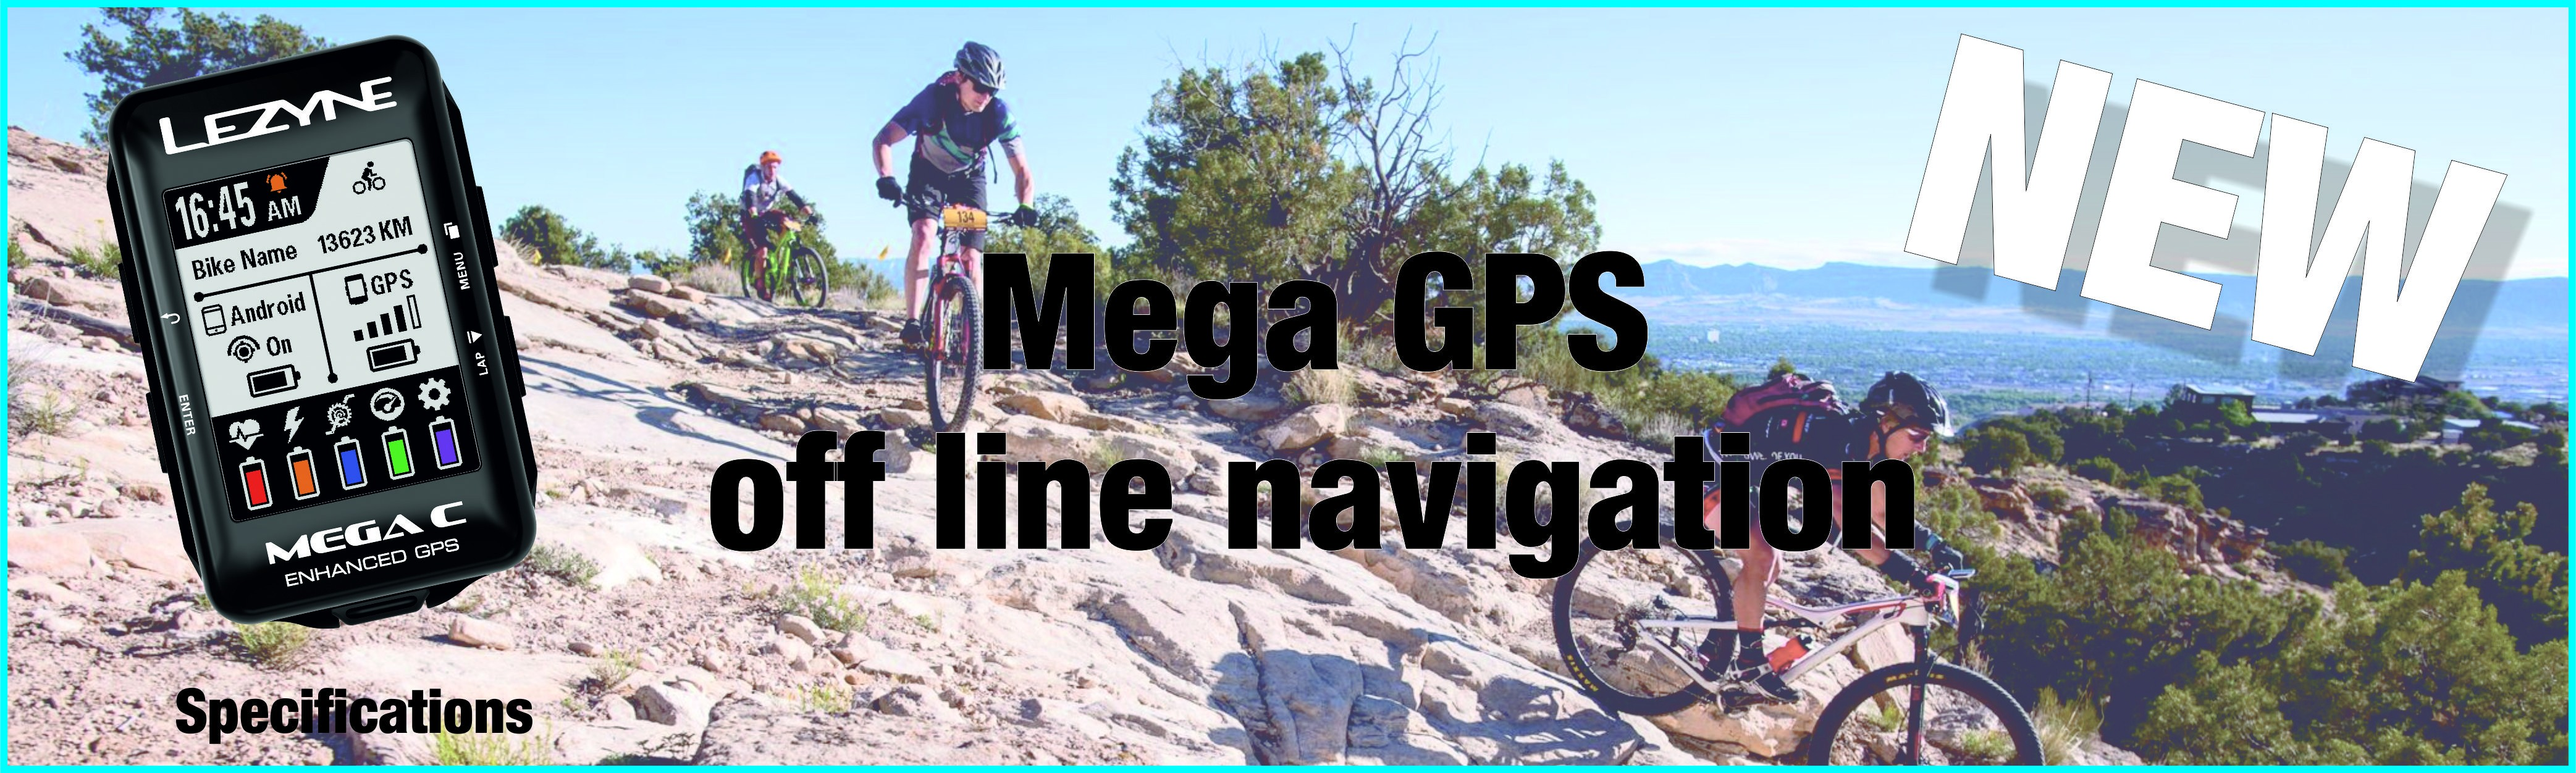 Our new MEGA GPS